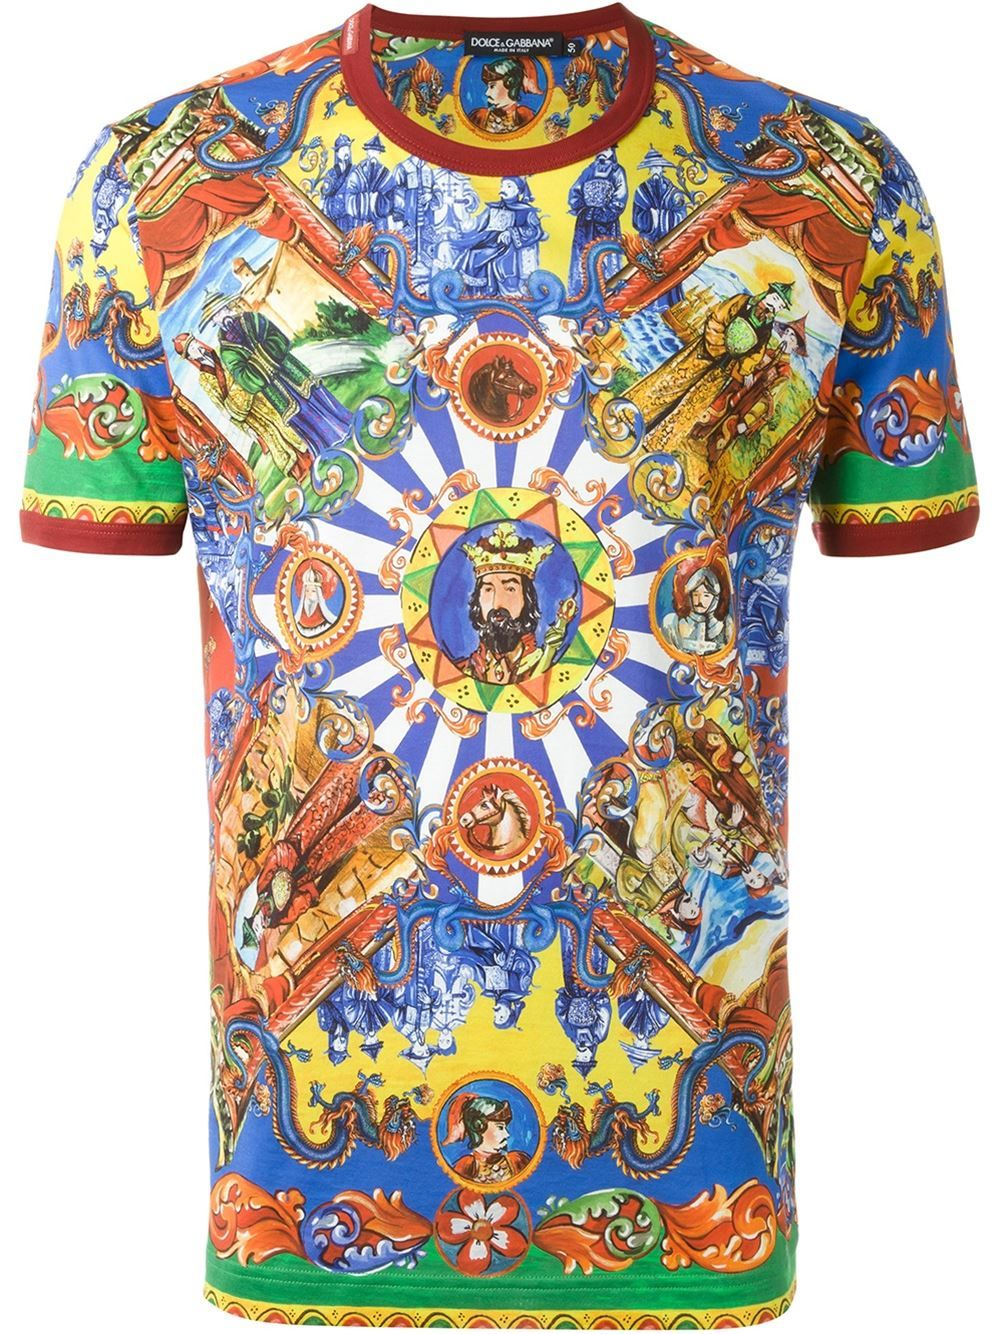 c5302541 Dolce & Gabbana Carretto Siciliano print T-shirt   The Tee Party! in ...